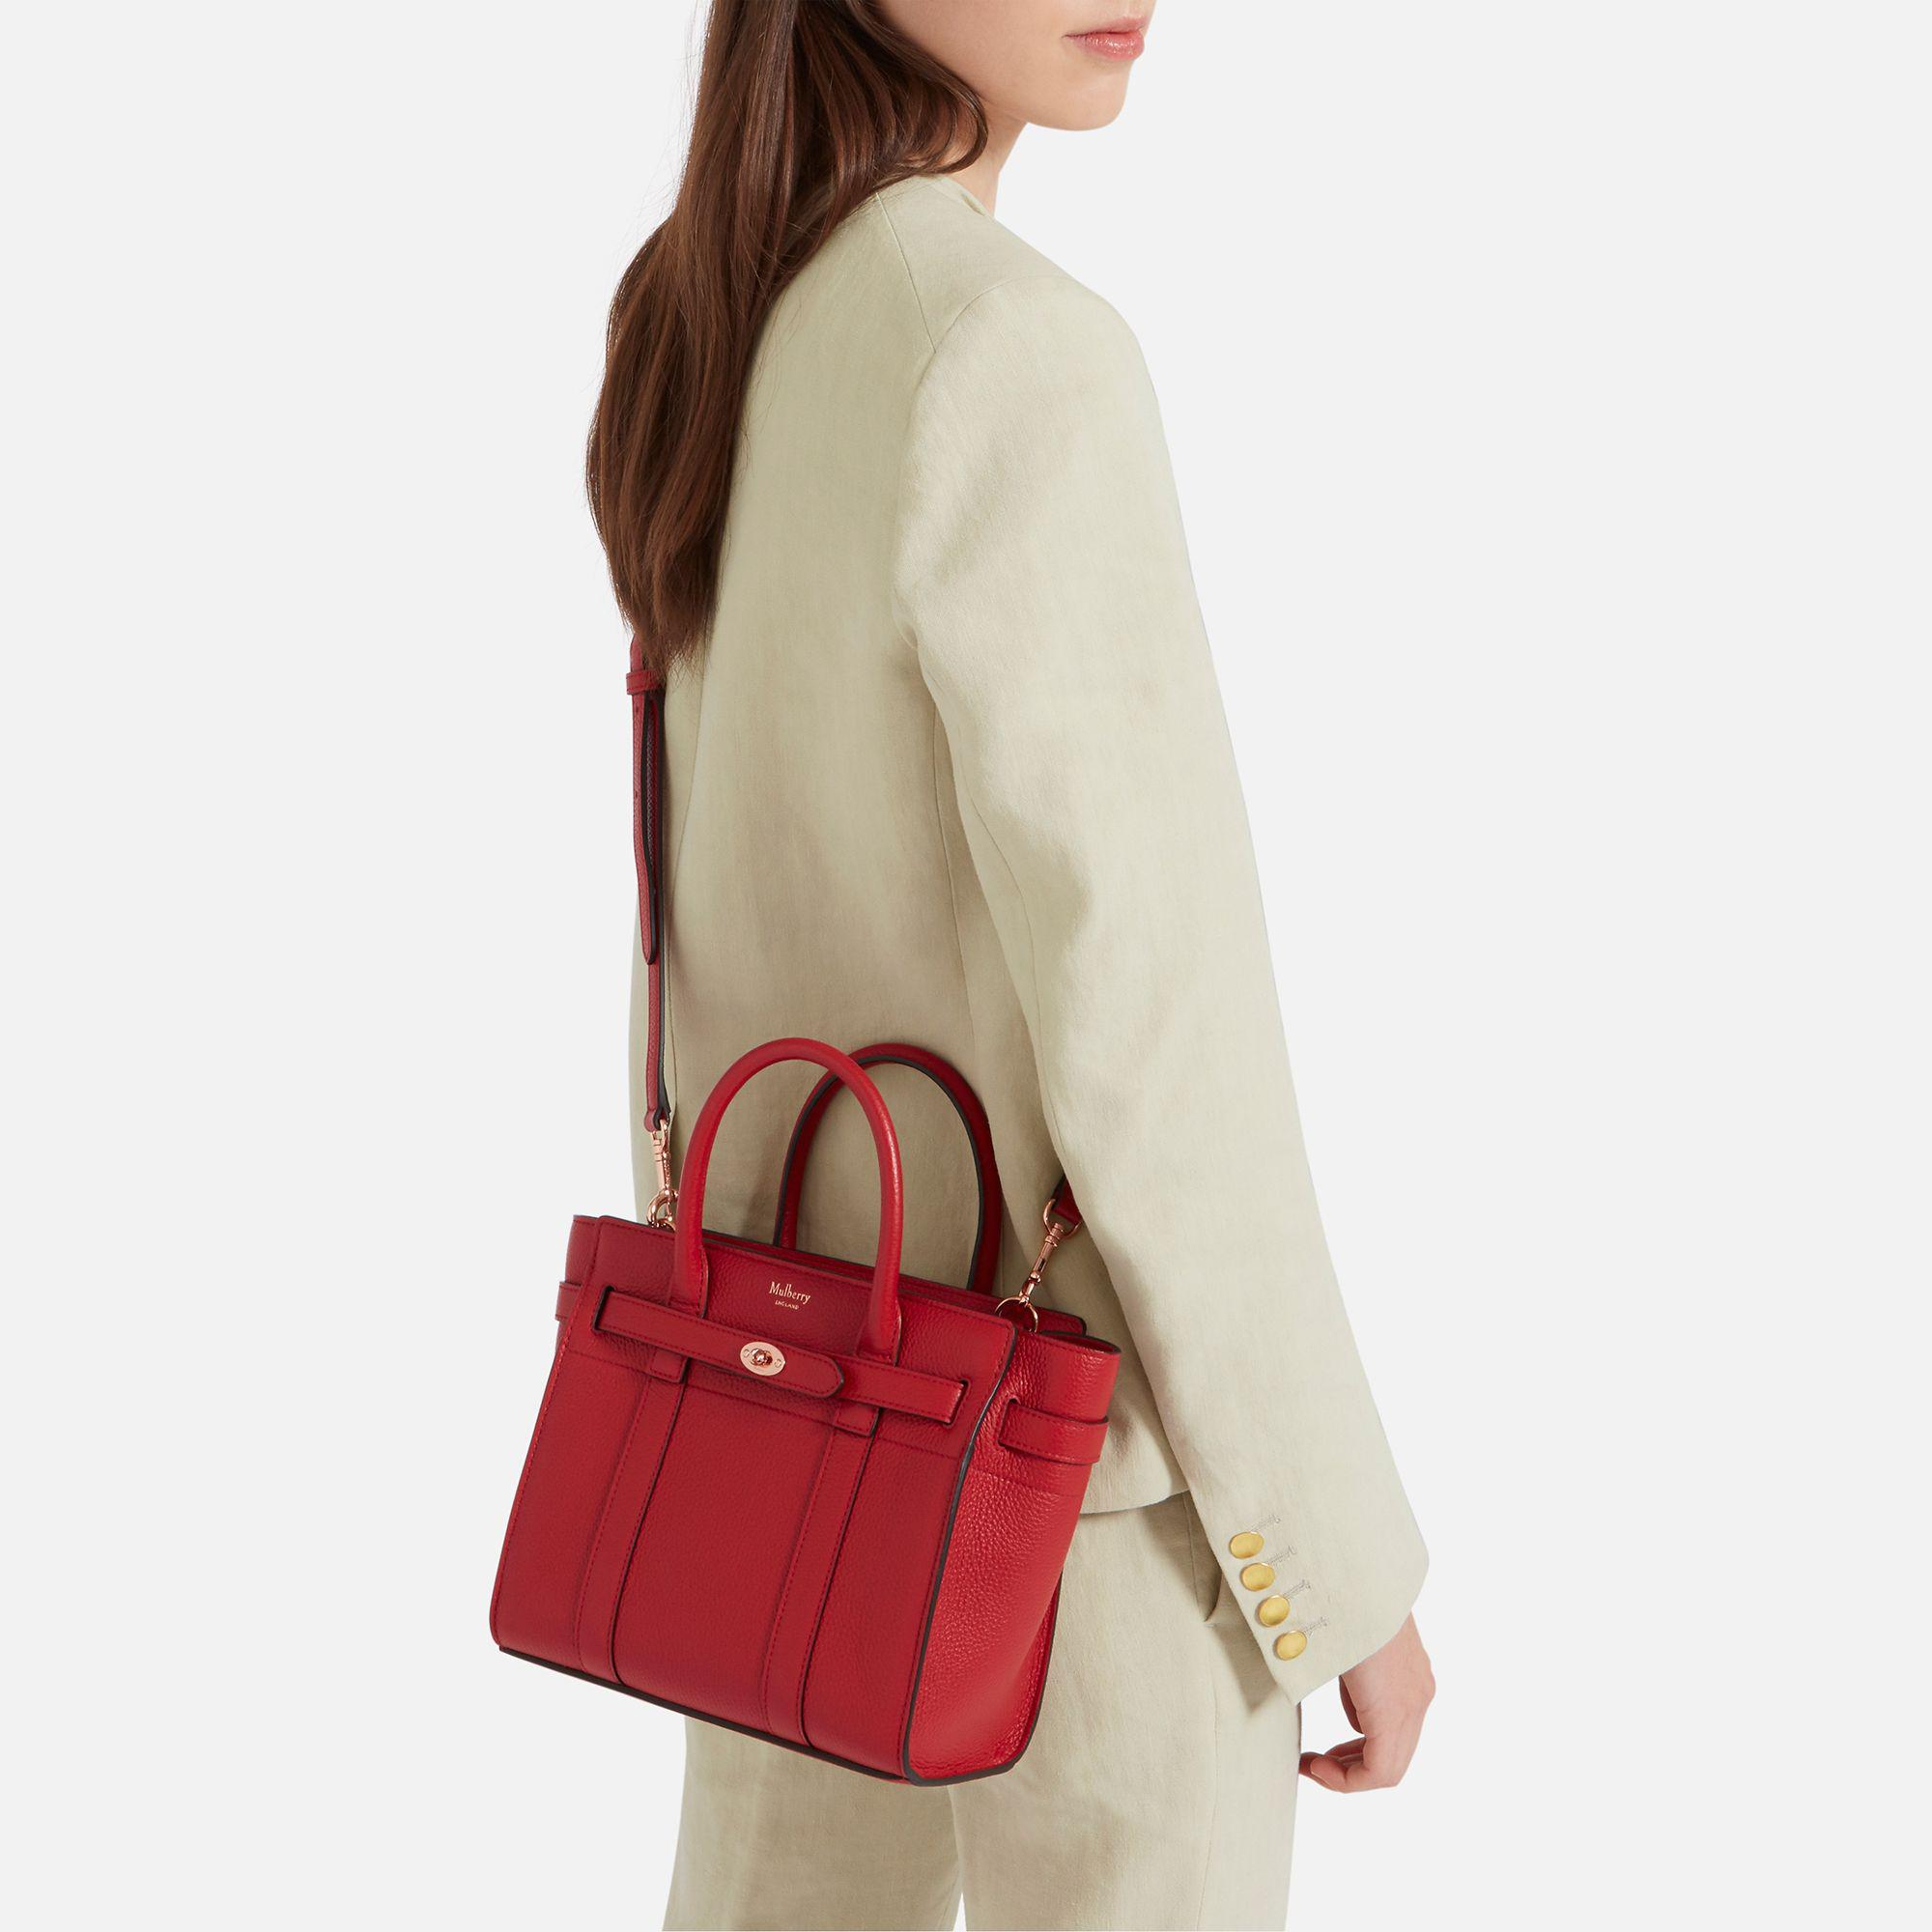 fe7efbb523 Lyst - Mulberry Mini Zipped Bayswater in Red